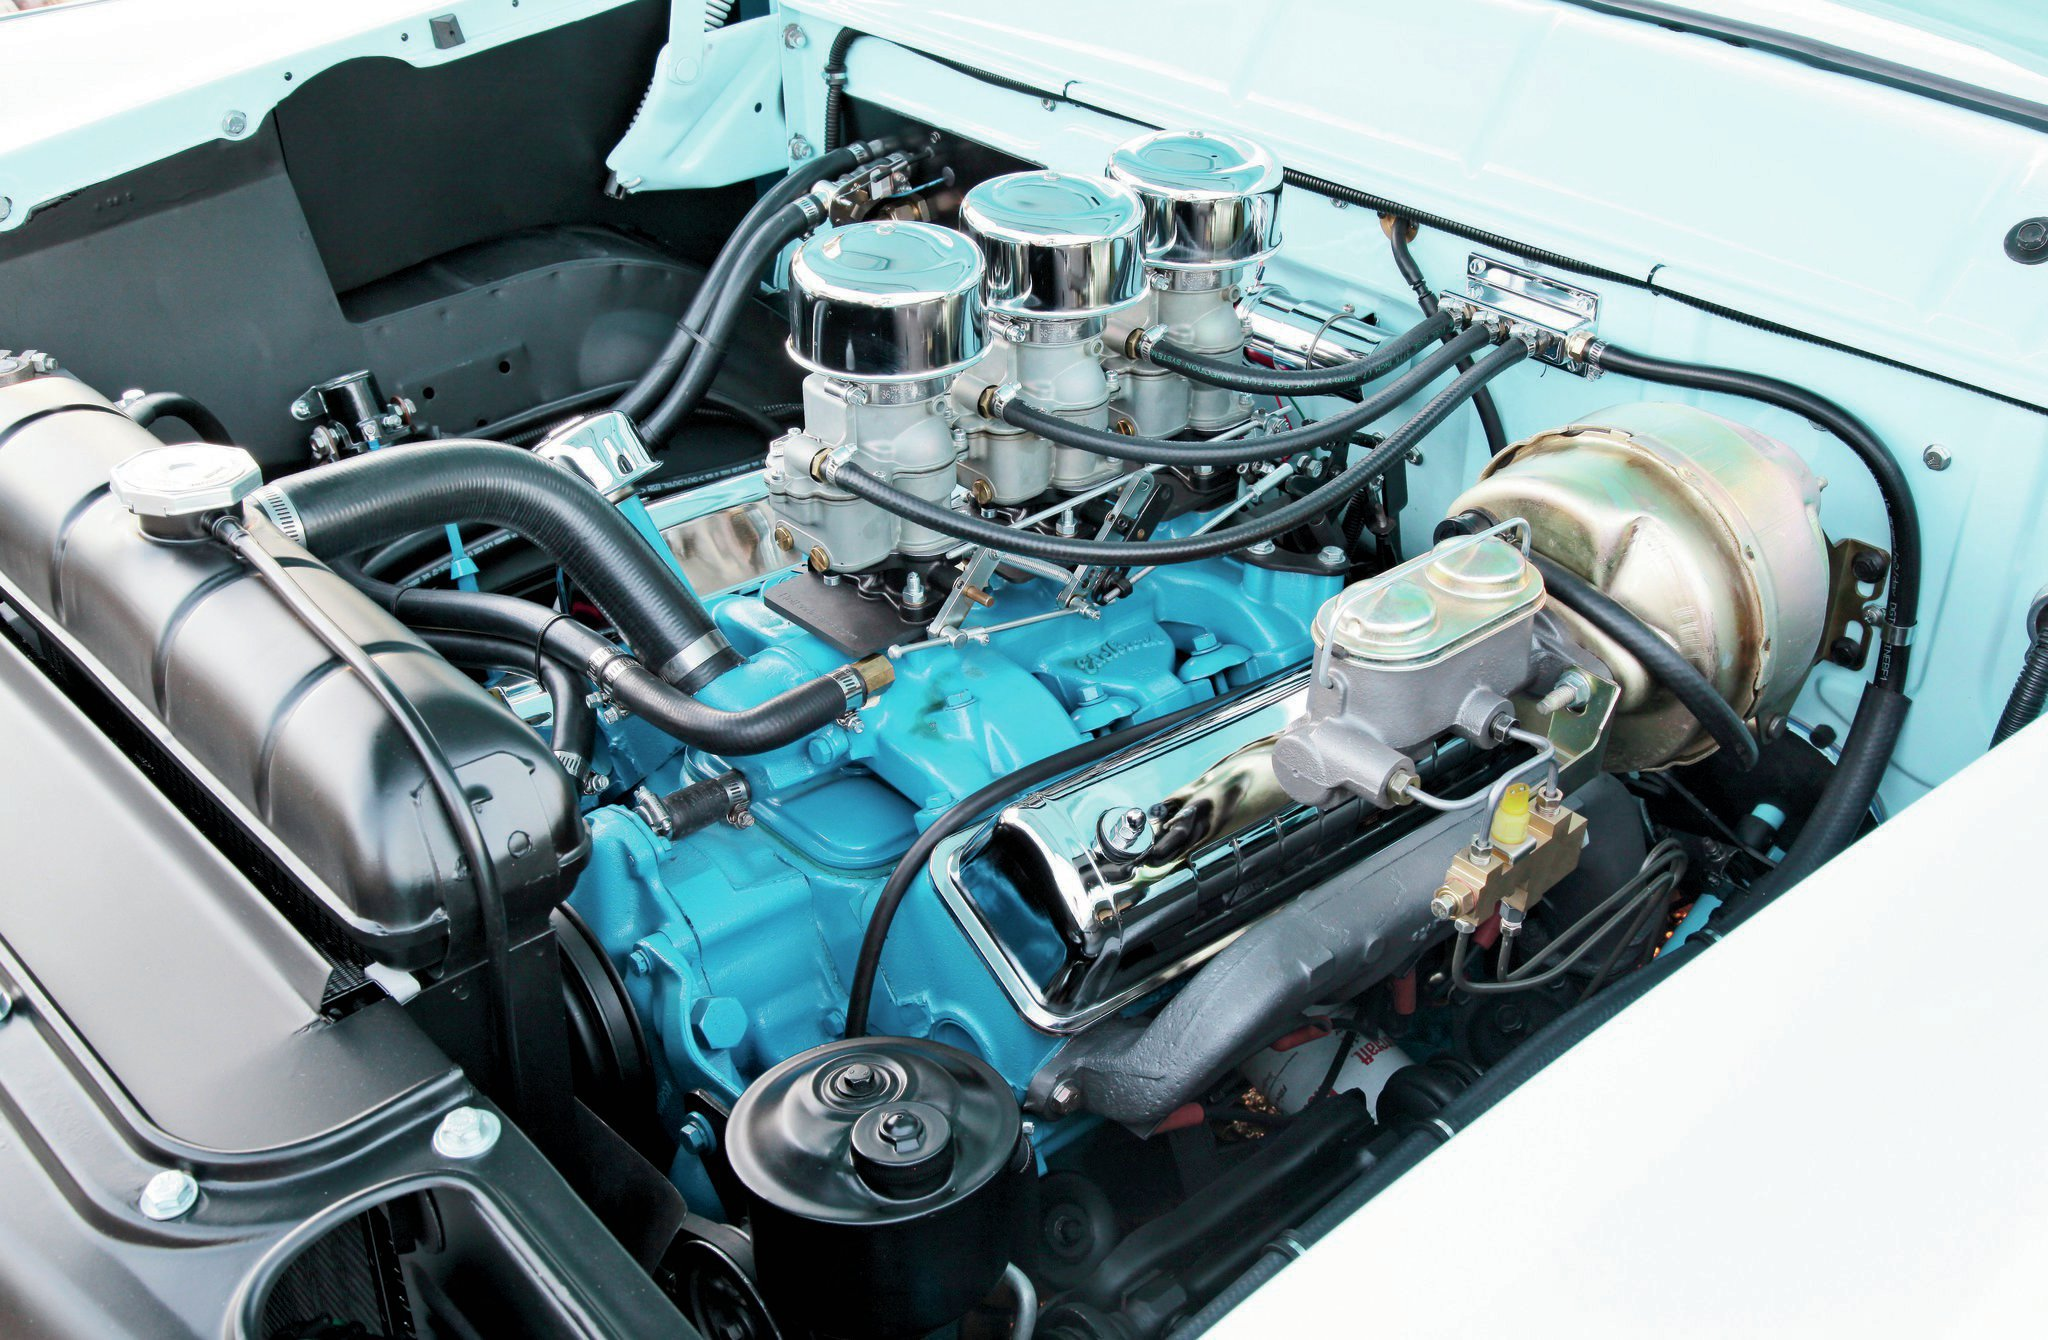 The stock 272-inch Y-block Ford had its heads freshened up and it's fed by an Edelbrock triple 94 carb setup. Smitty's mufflers provide some added performance, while a chrome air cleaner and valve covers from Speedway Motors dress up the engine.